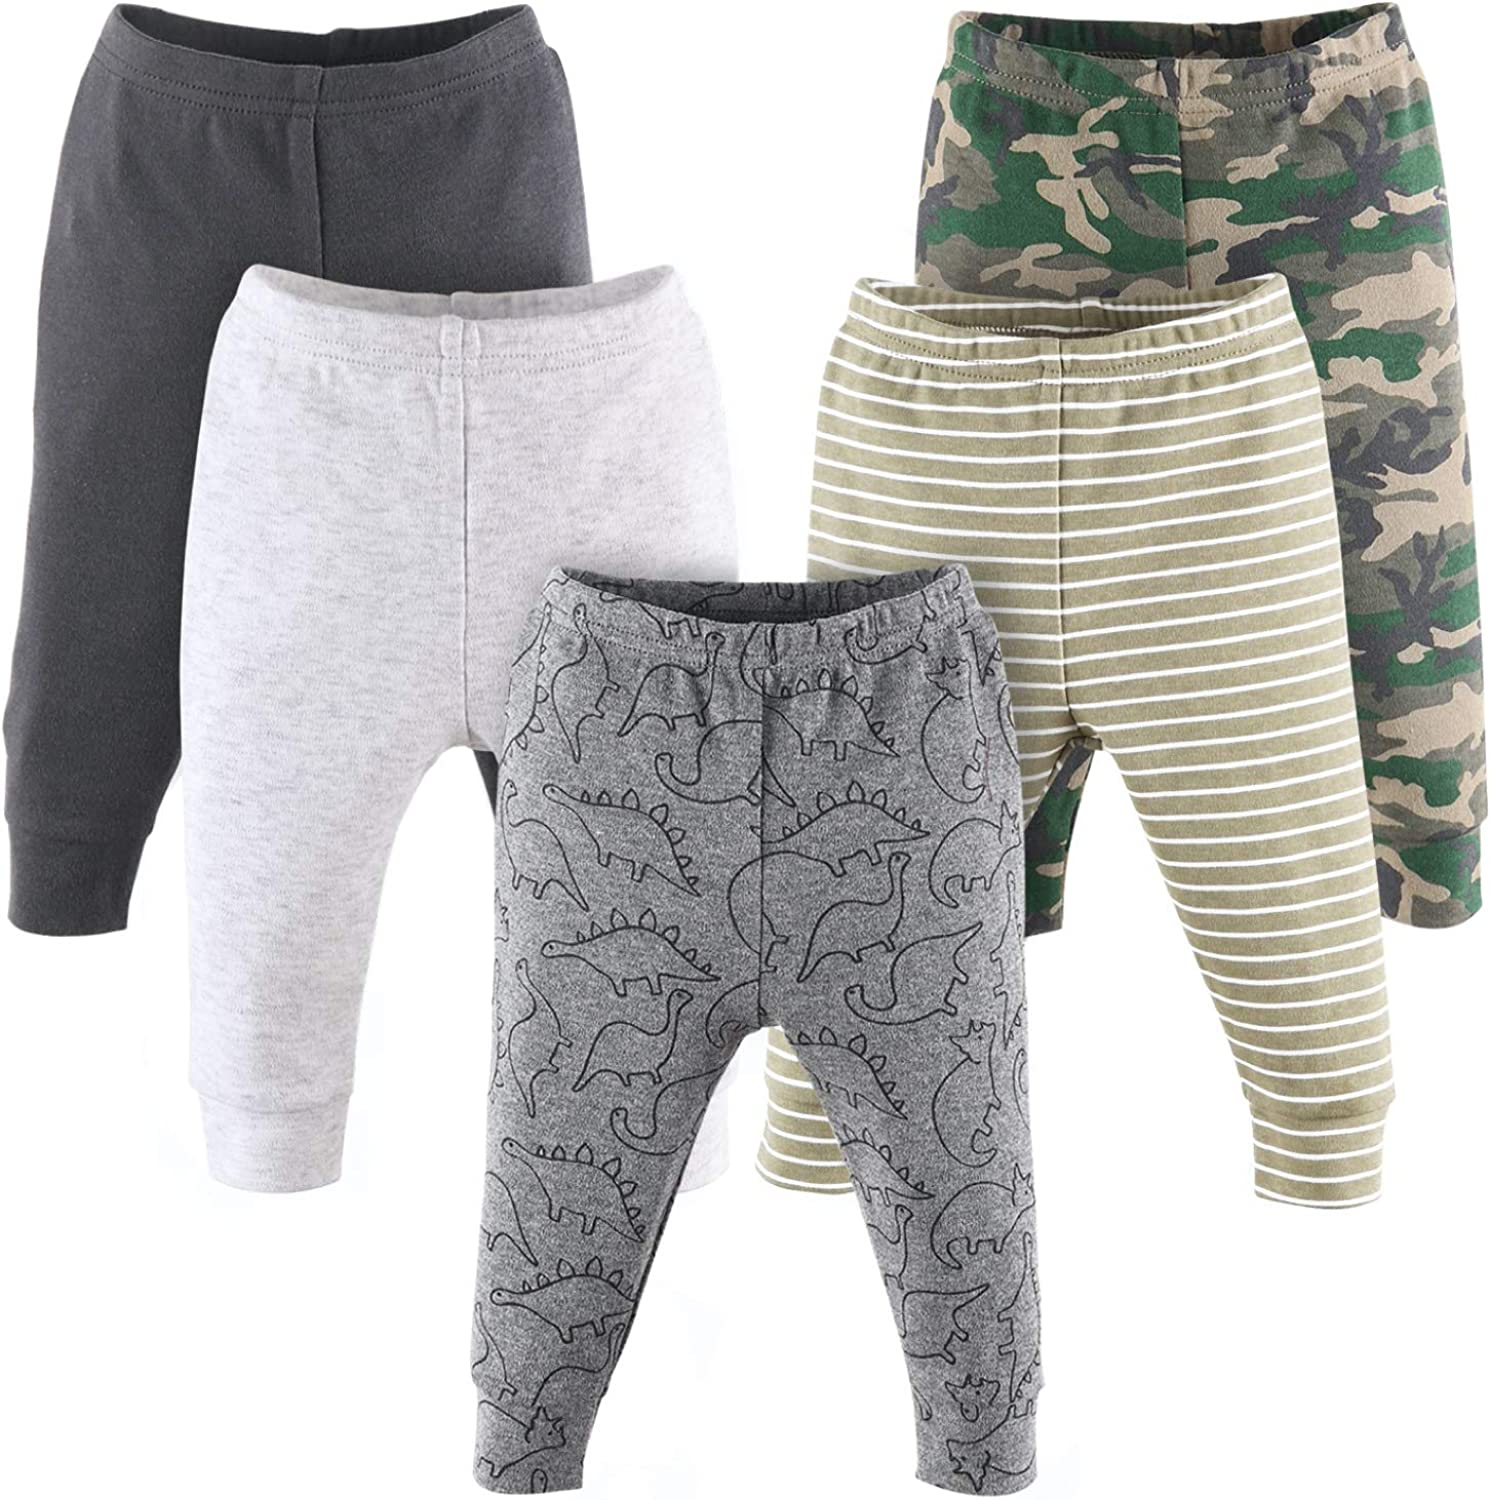 Genuine Free Shipping The Peanutshell Fees free Camo and Dinosaur Baby Pants for Boys 5 Pack S